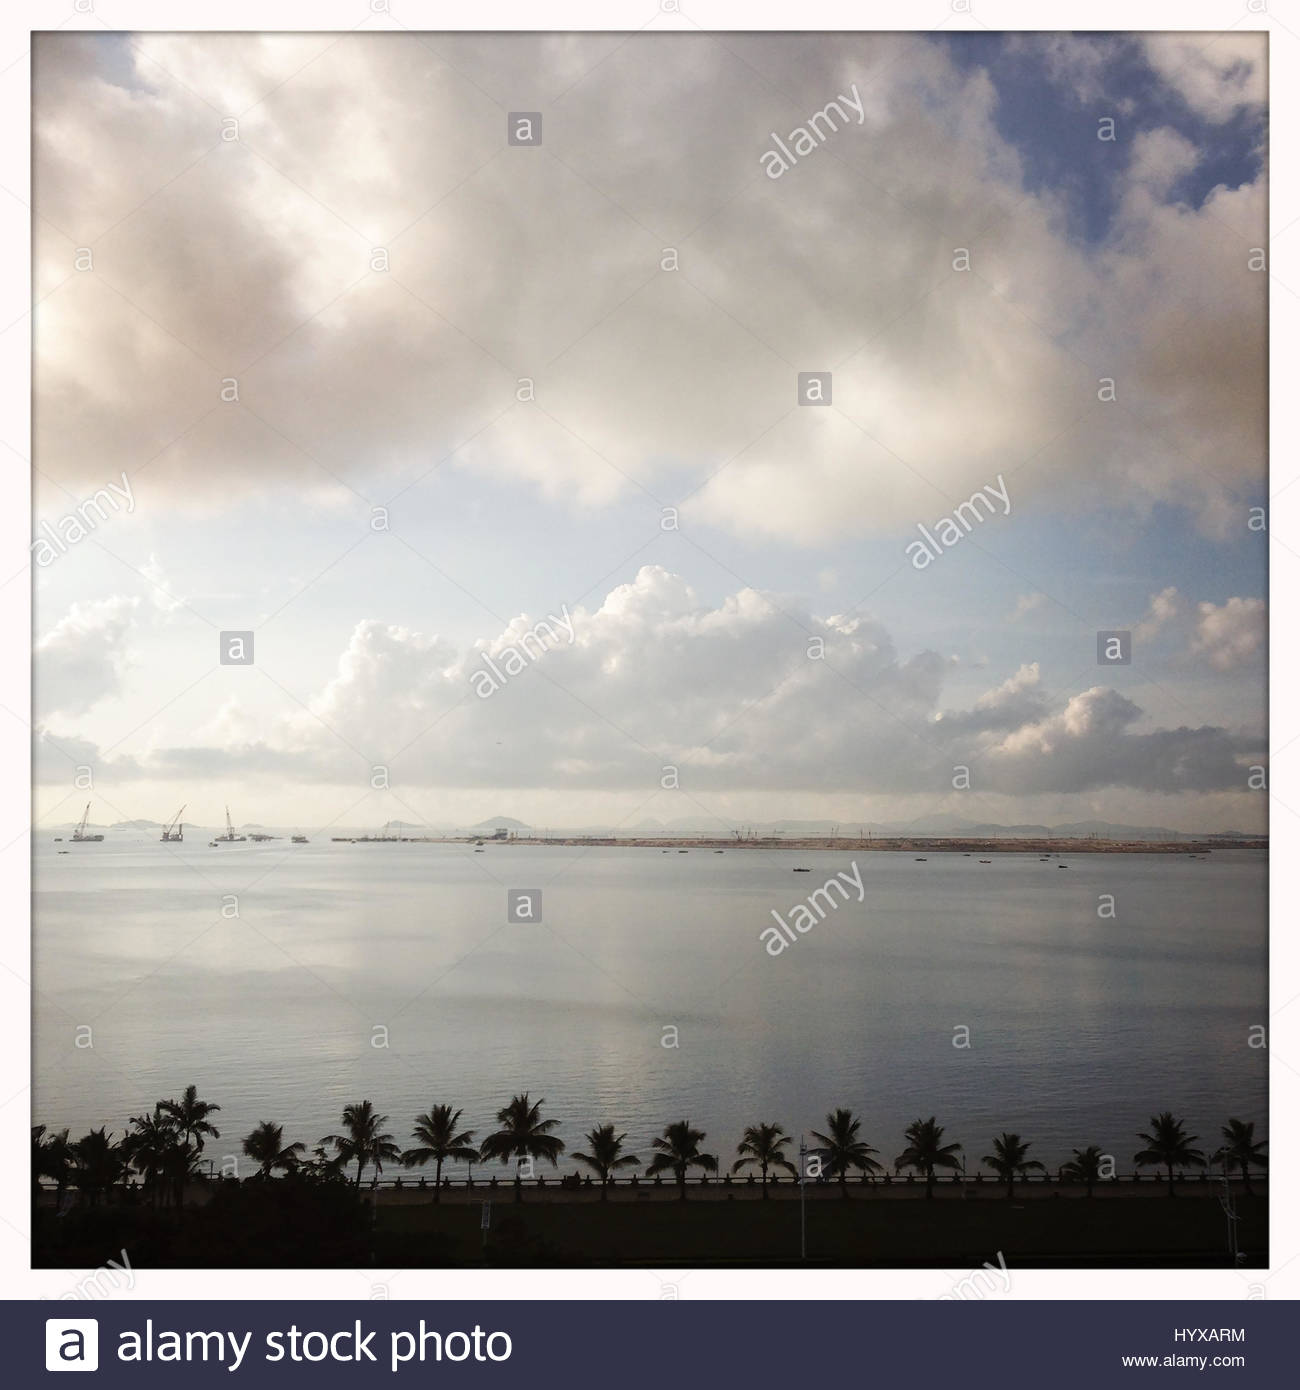 The South China Sea viewed from the city of Zhuhai. - Stock Image